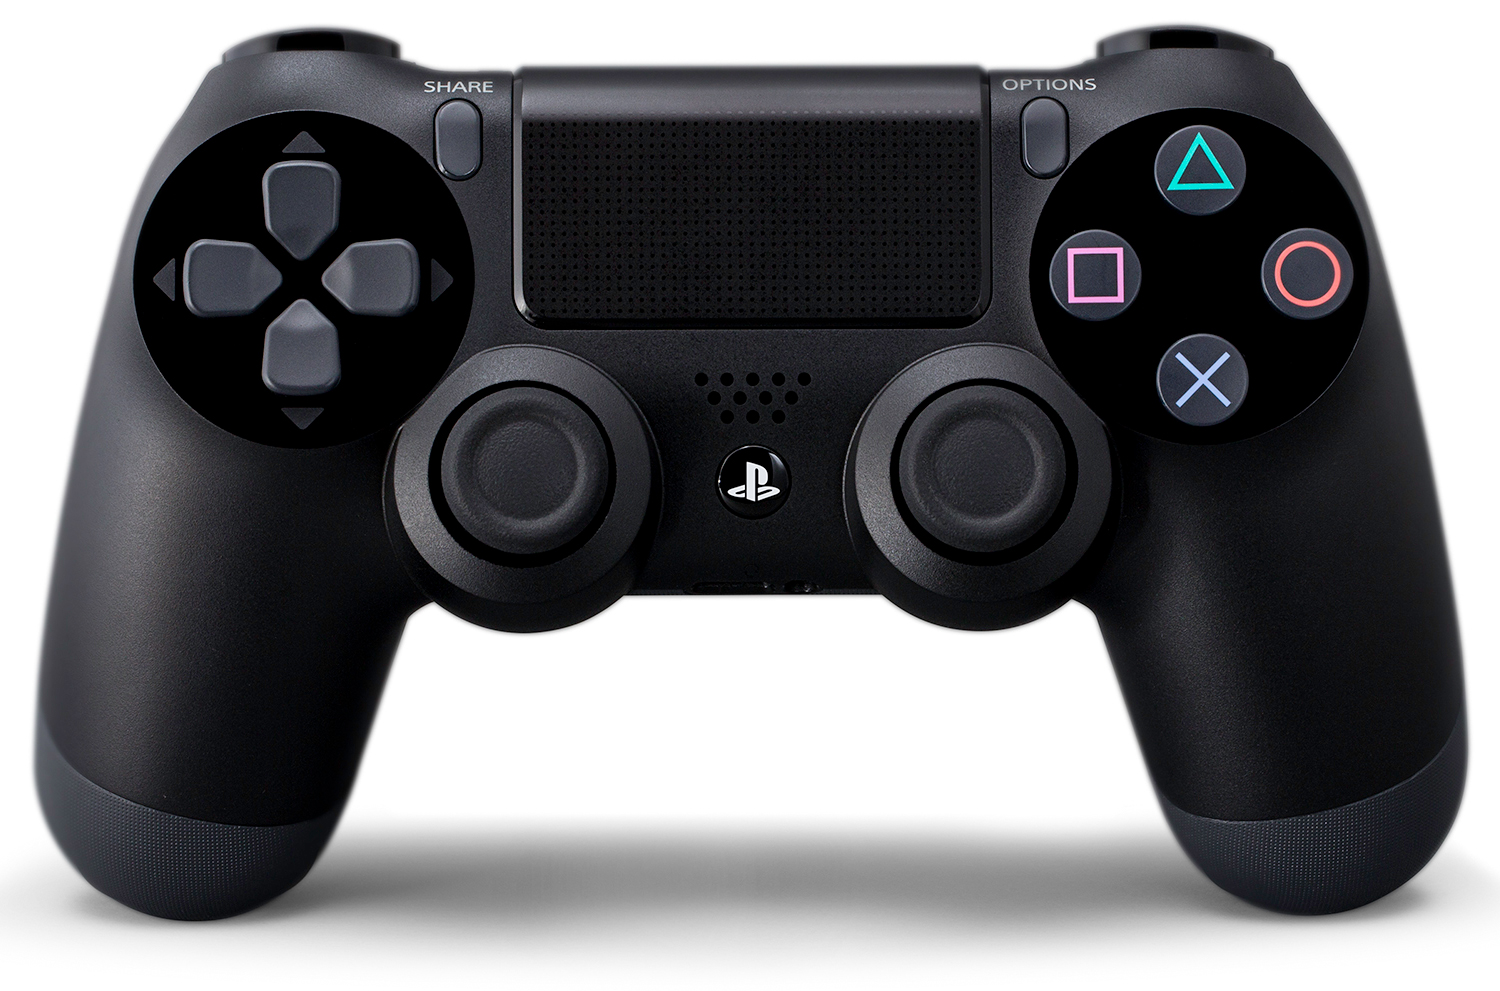 Dualshock 4 Controller Works With Mac Os Computers